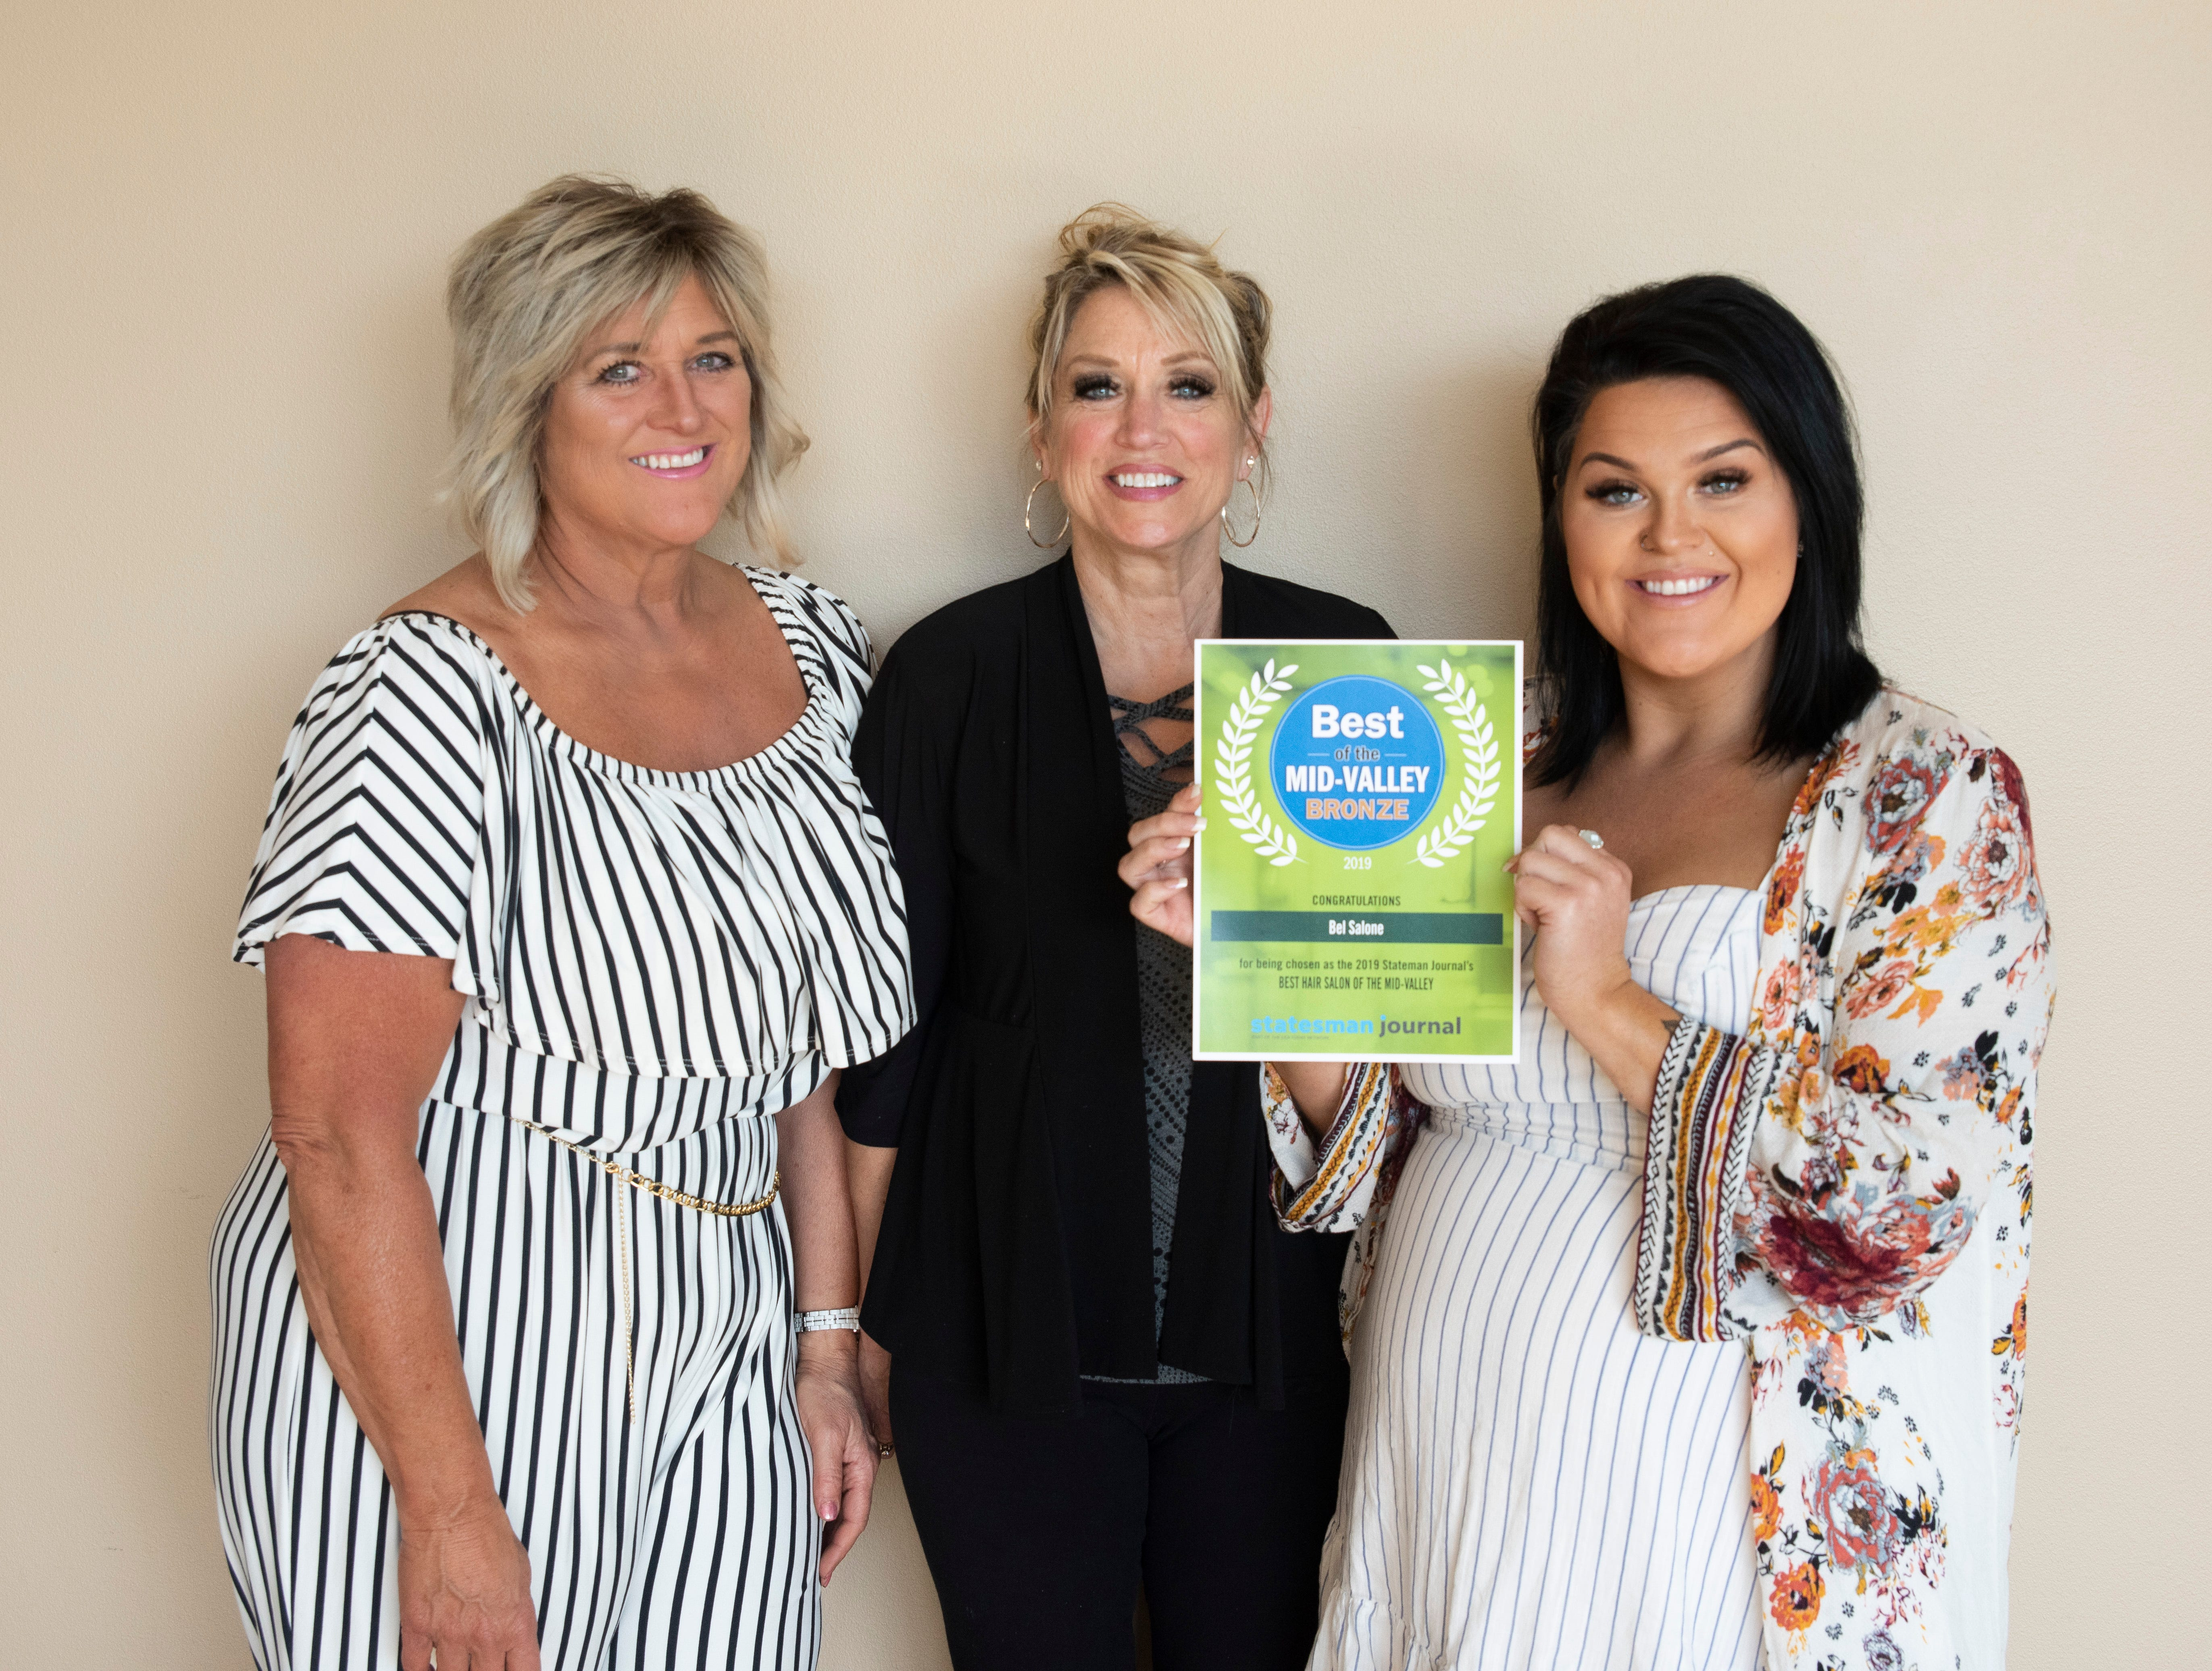 Bel Salone won bronze for Best Hair Salon in the 2019 Best of the Mid-Valley.